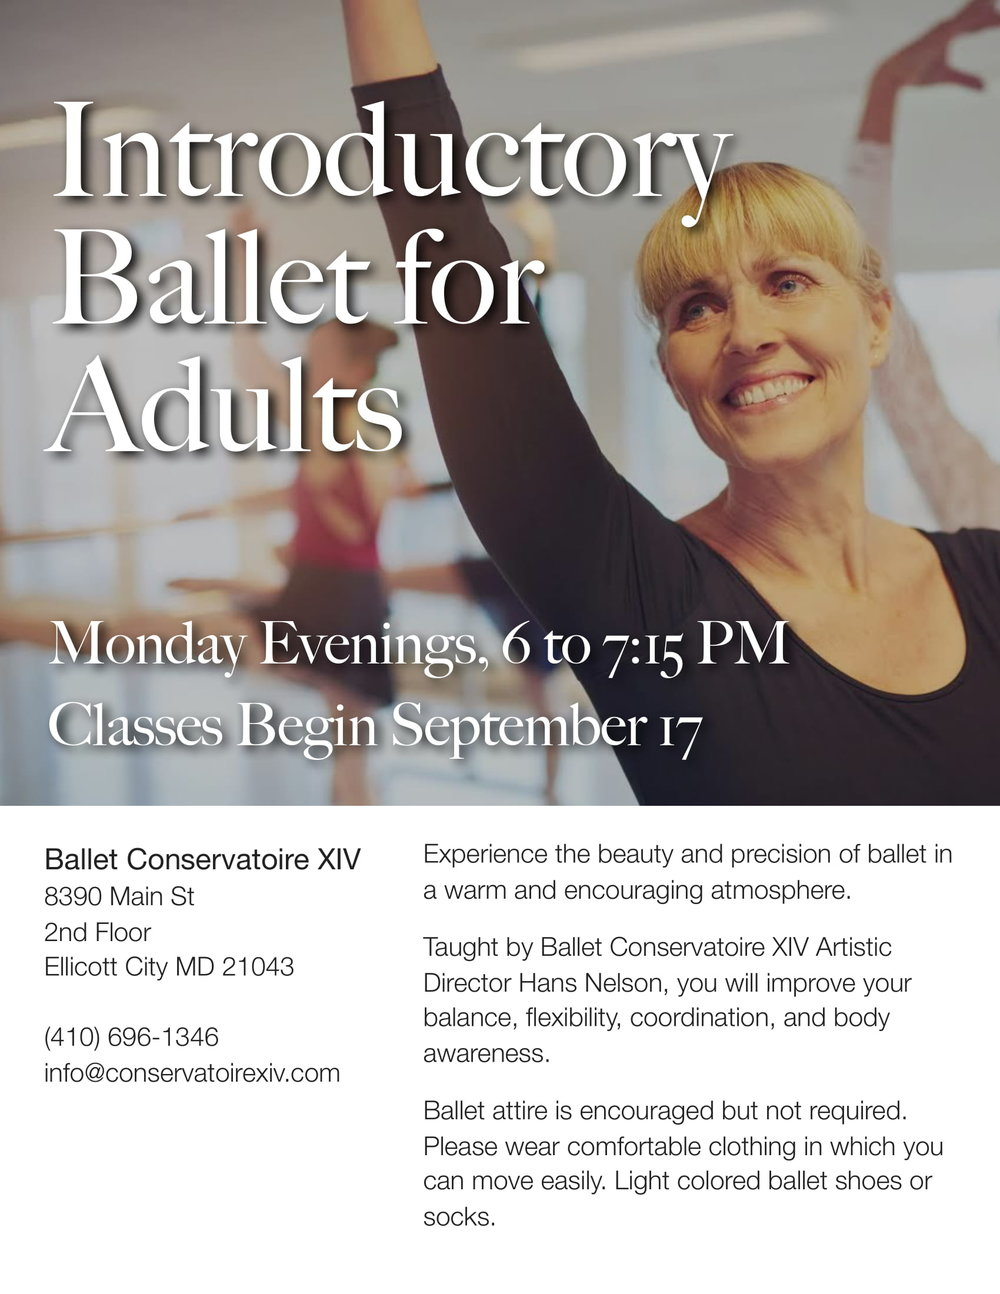 Introductory Ballet Flyer-1.jpg